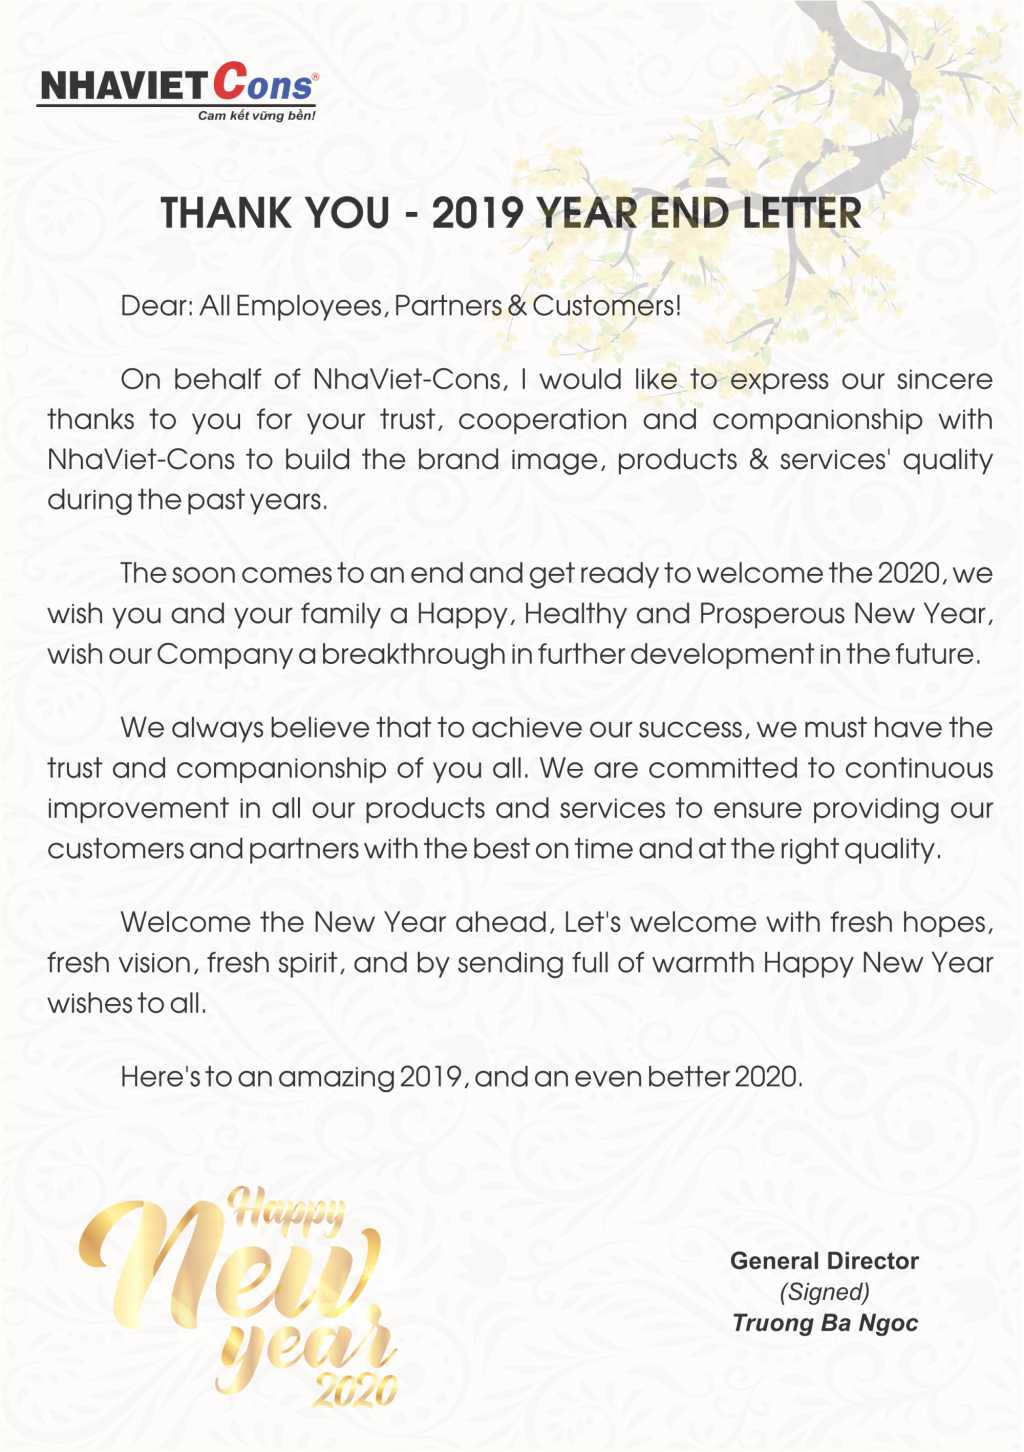 Ending Letter With Thank You from nhaviet.com.vn